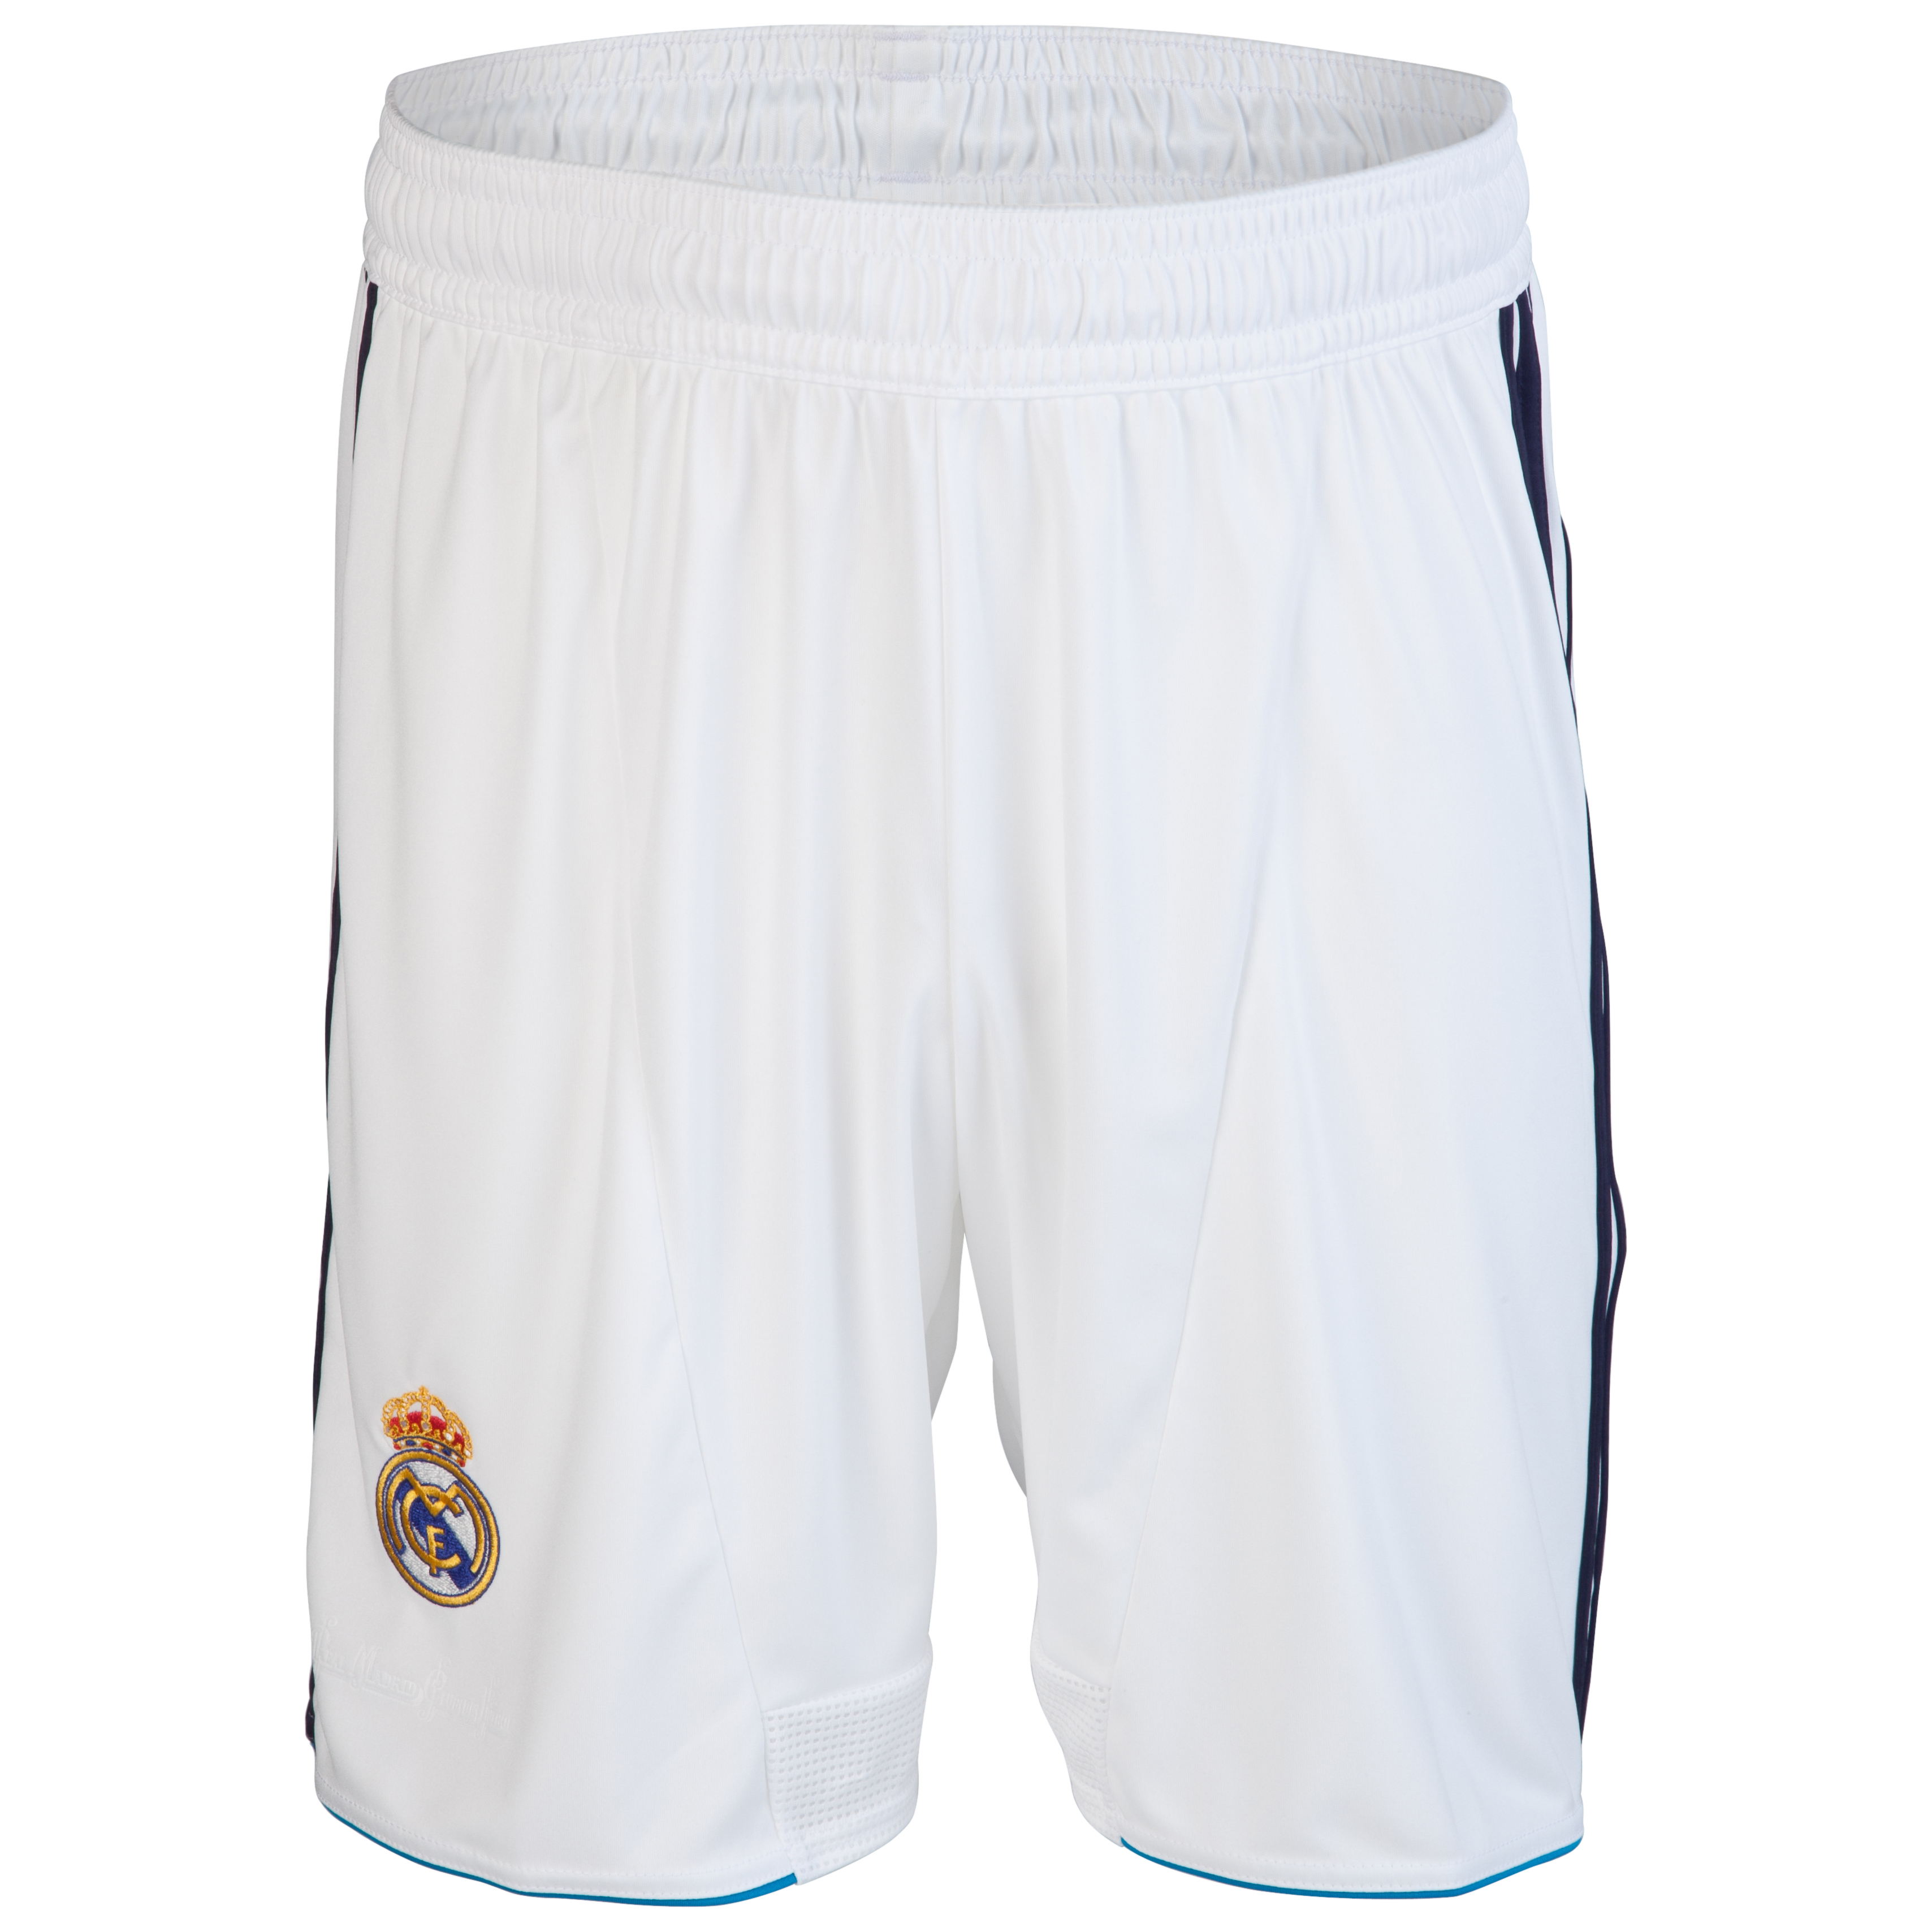 Real Madrid Home Short 2012/13